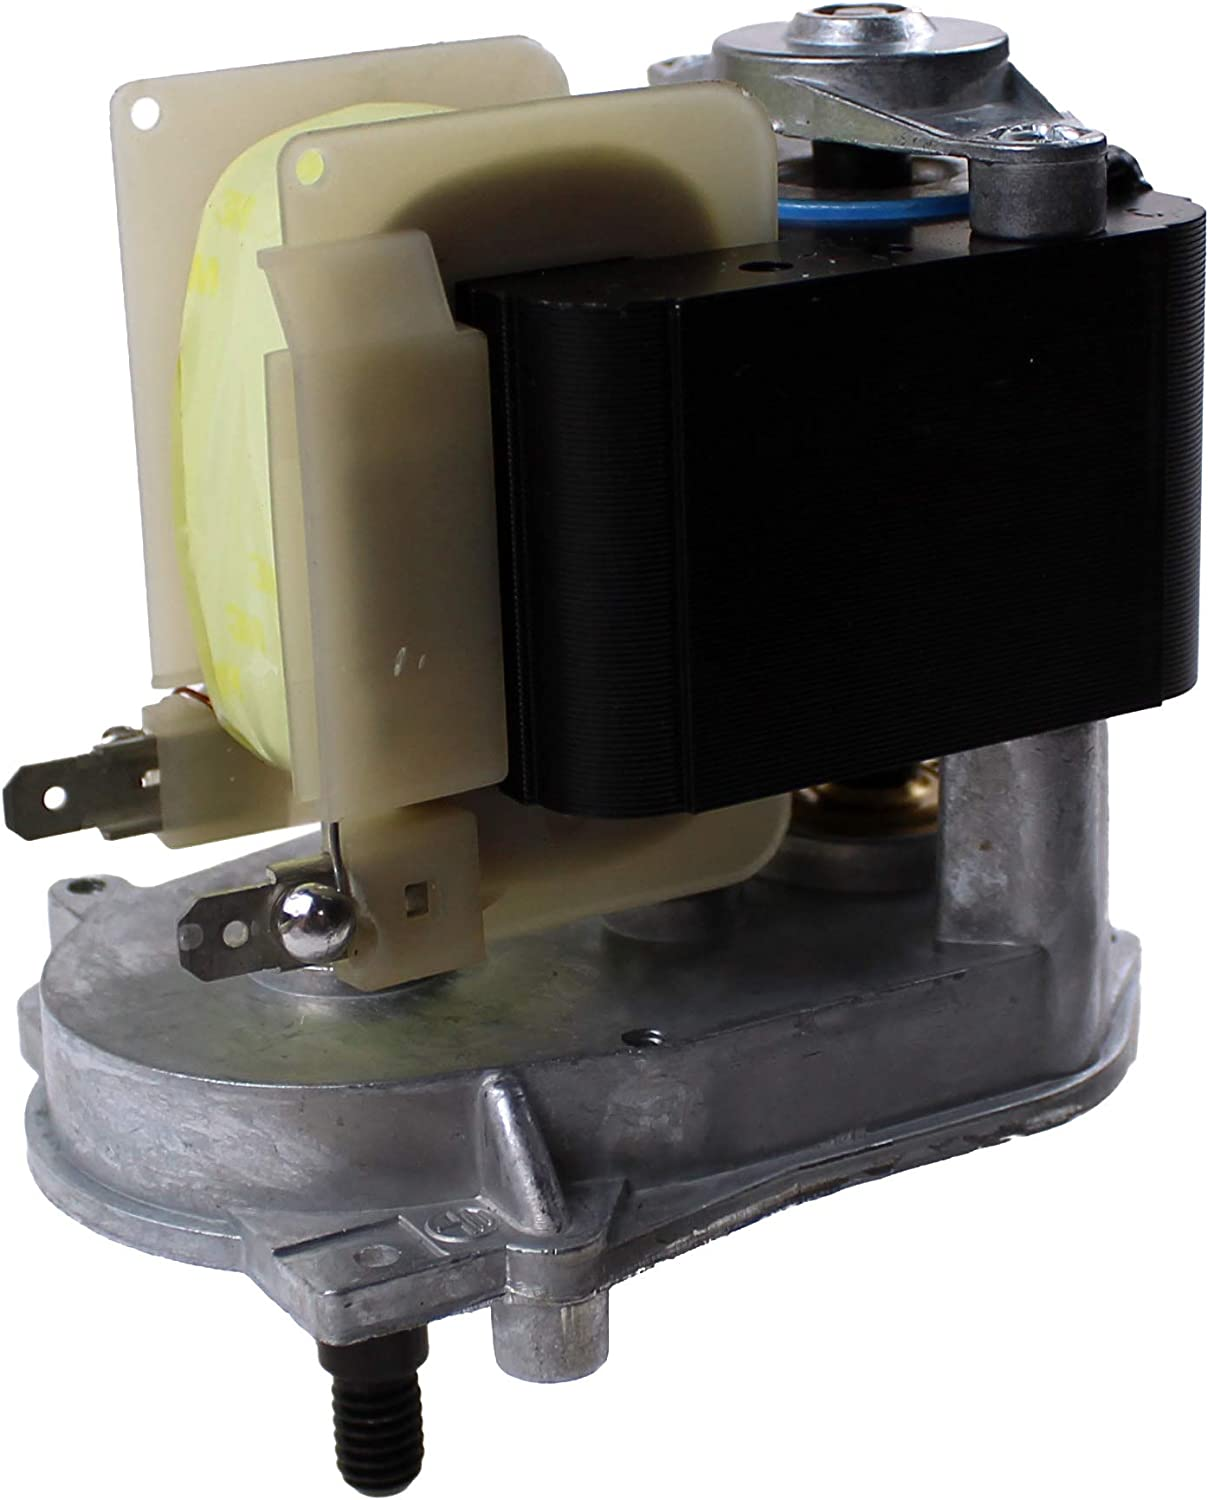 Supplying Demand Purchase 242221501 Freezer Chicago Mall Ice Maker Motor Replace Auger